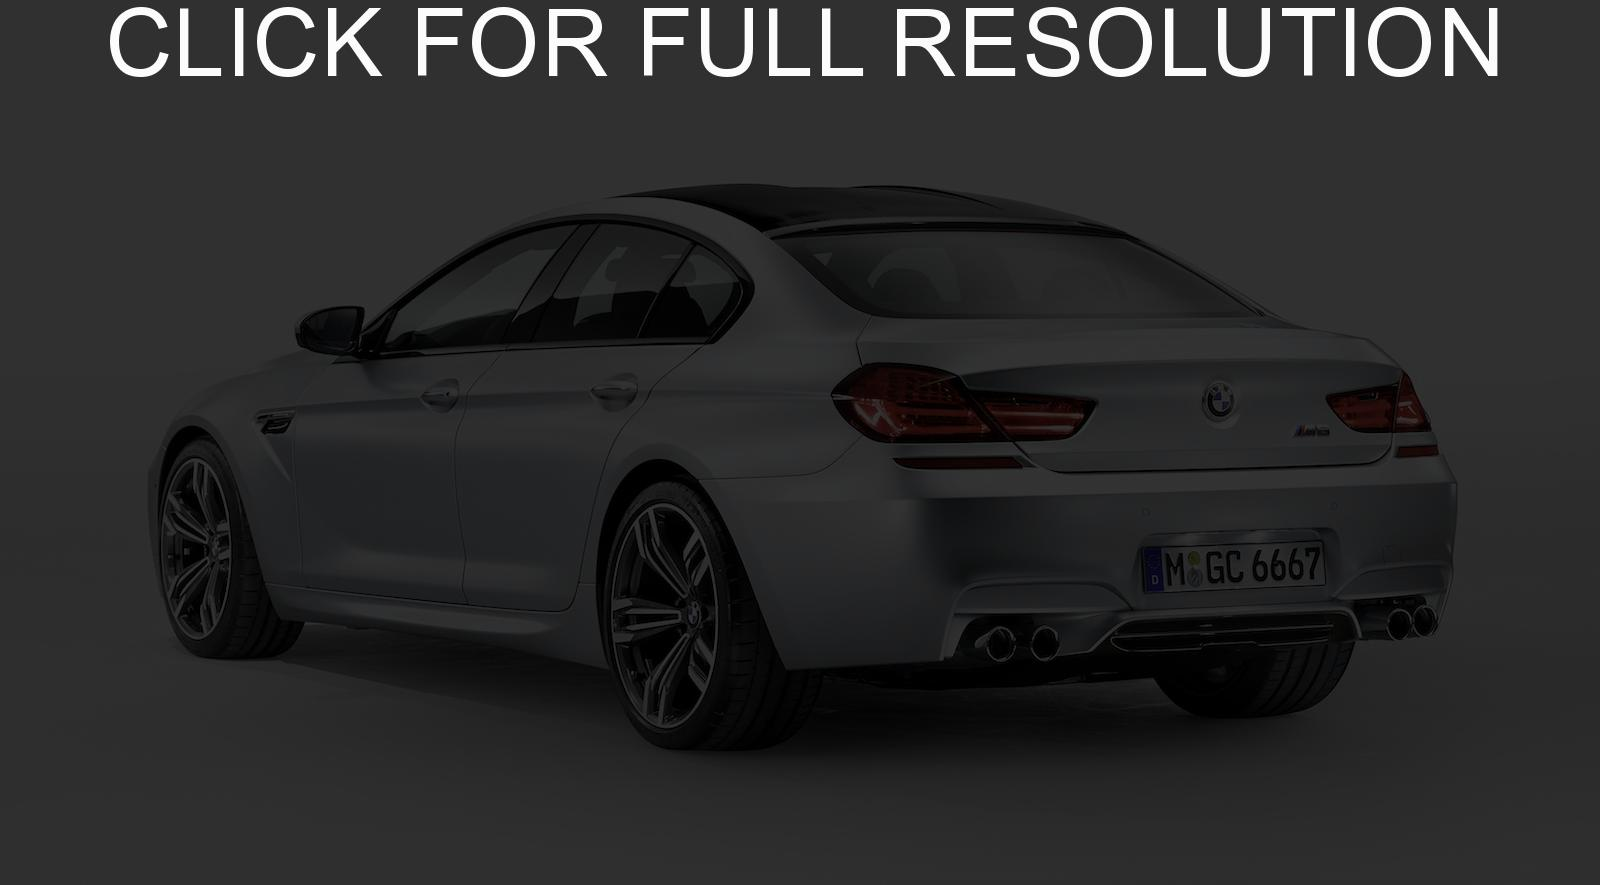 BMW M6 Auto & Car Wallpapers HD | Iphone | Android| Desktop 8 Wallpaper